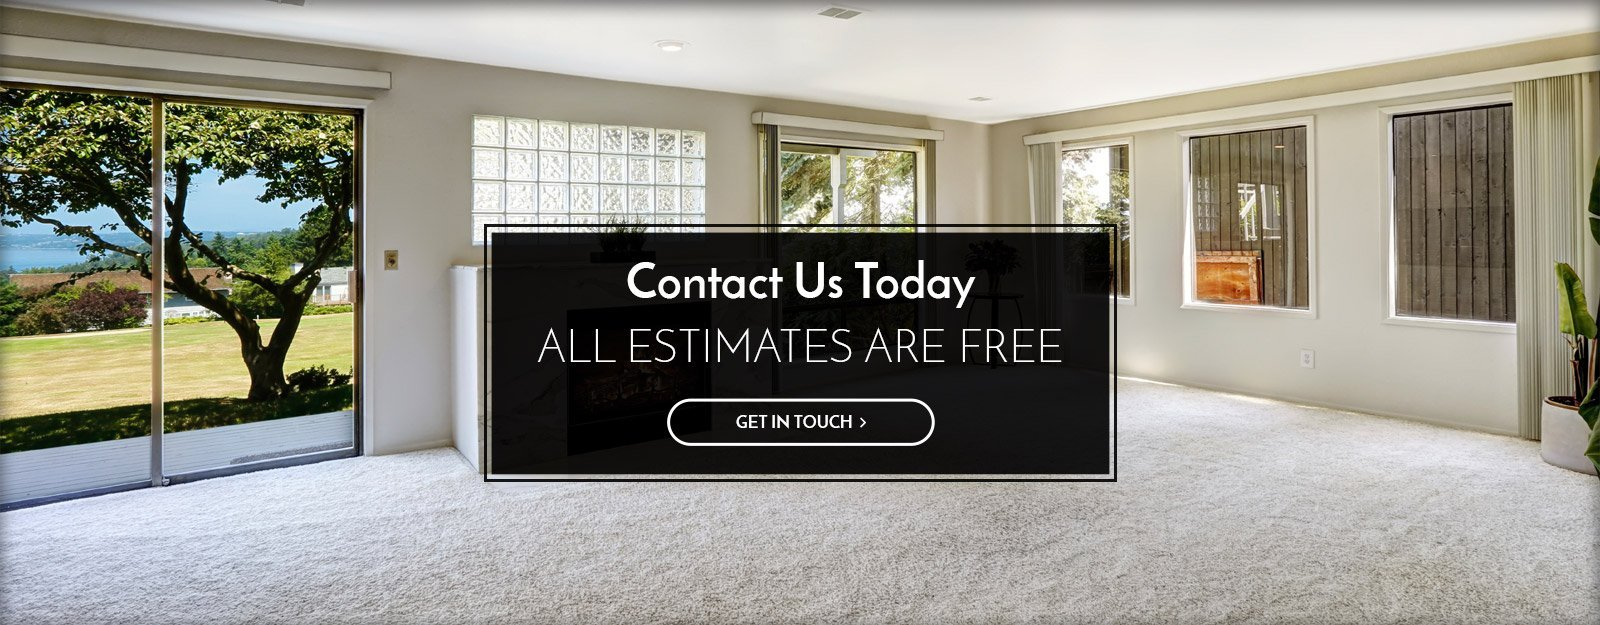 Carpet Cleaning Services Raleigh